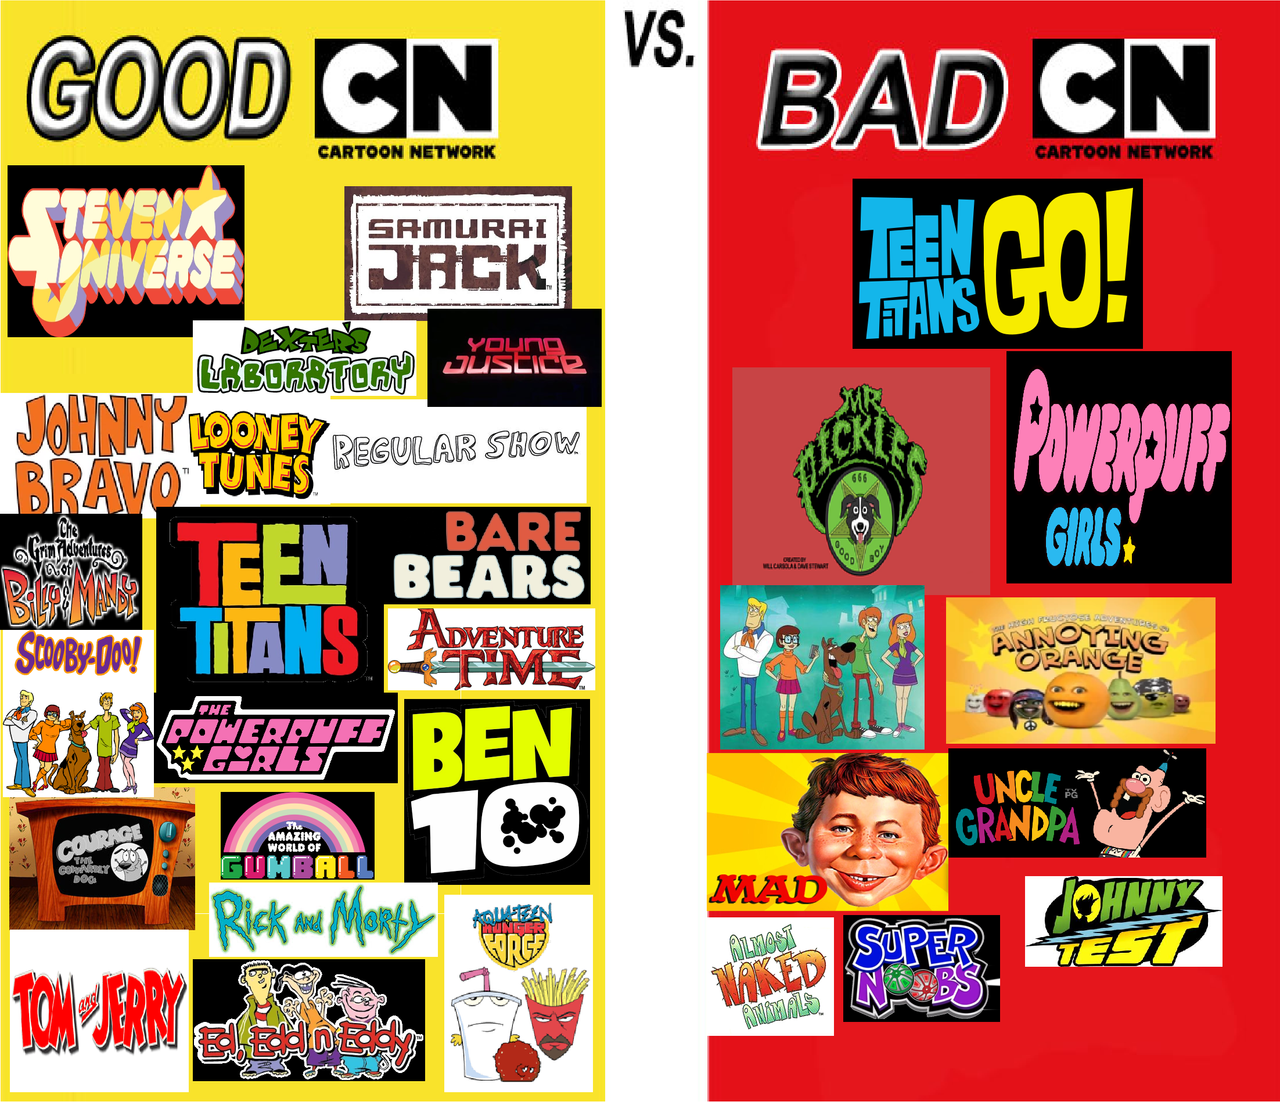 Cartoon network television shows